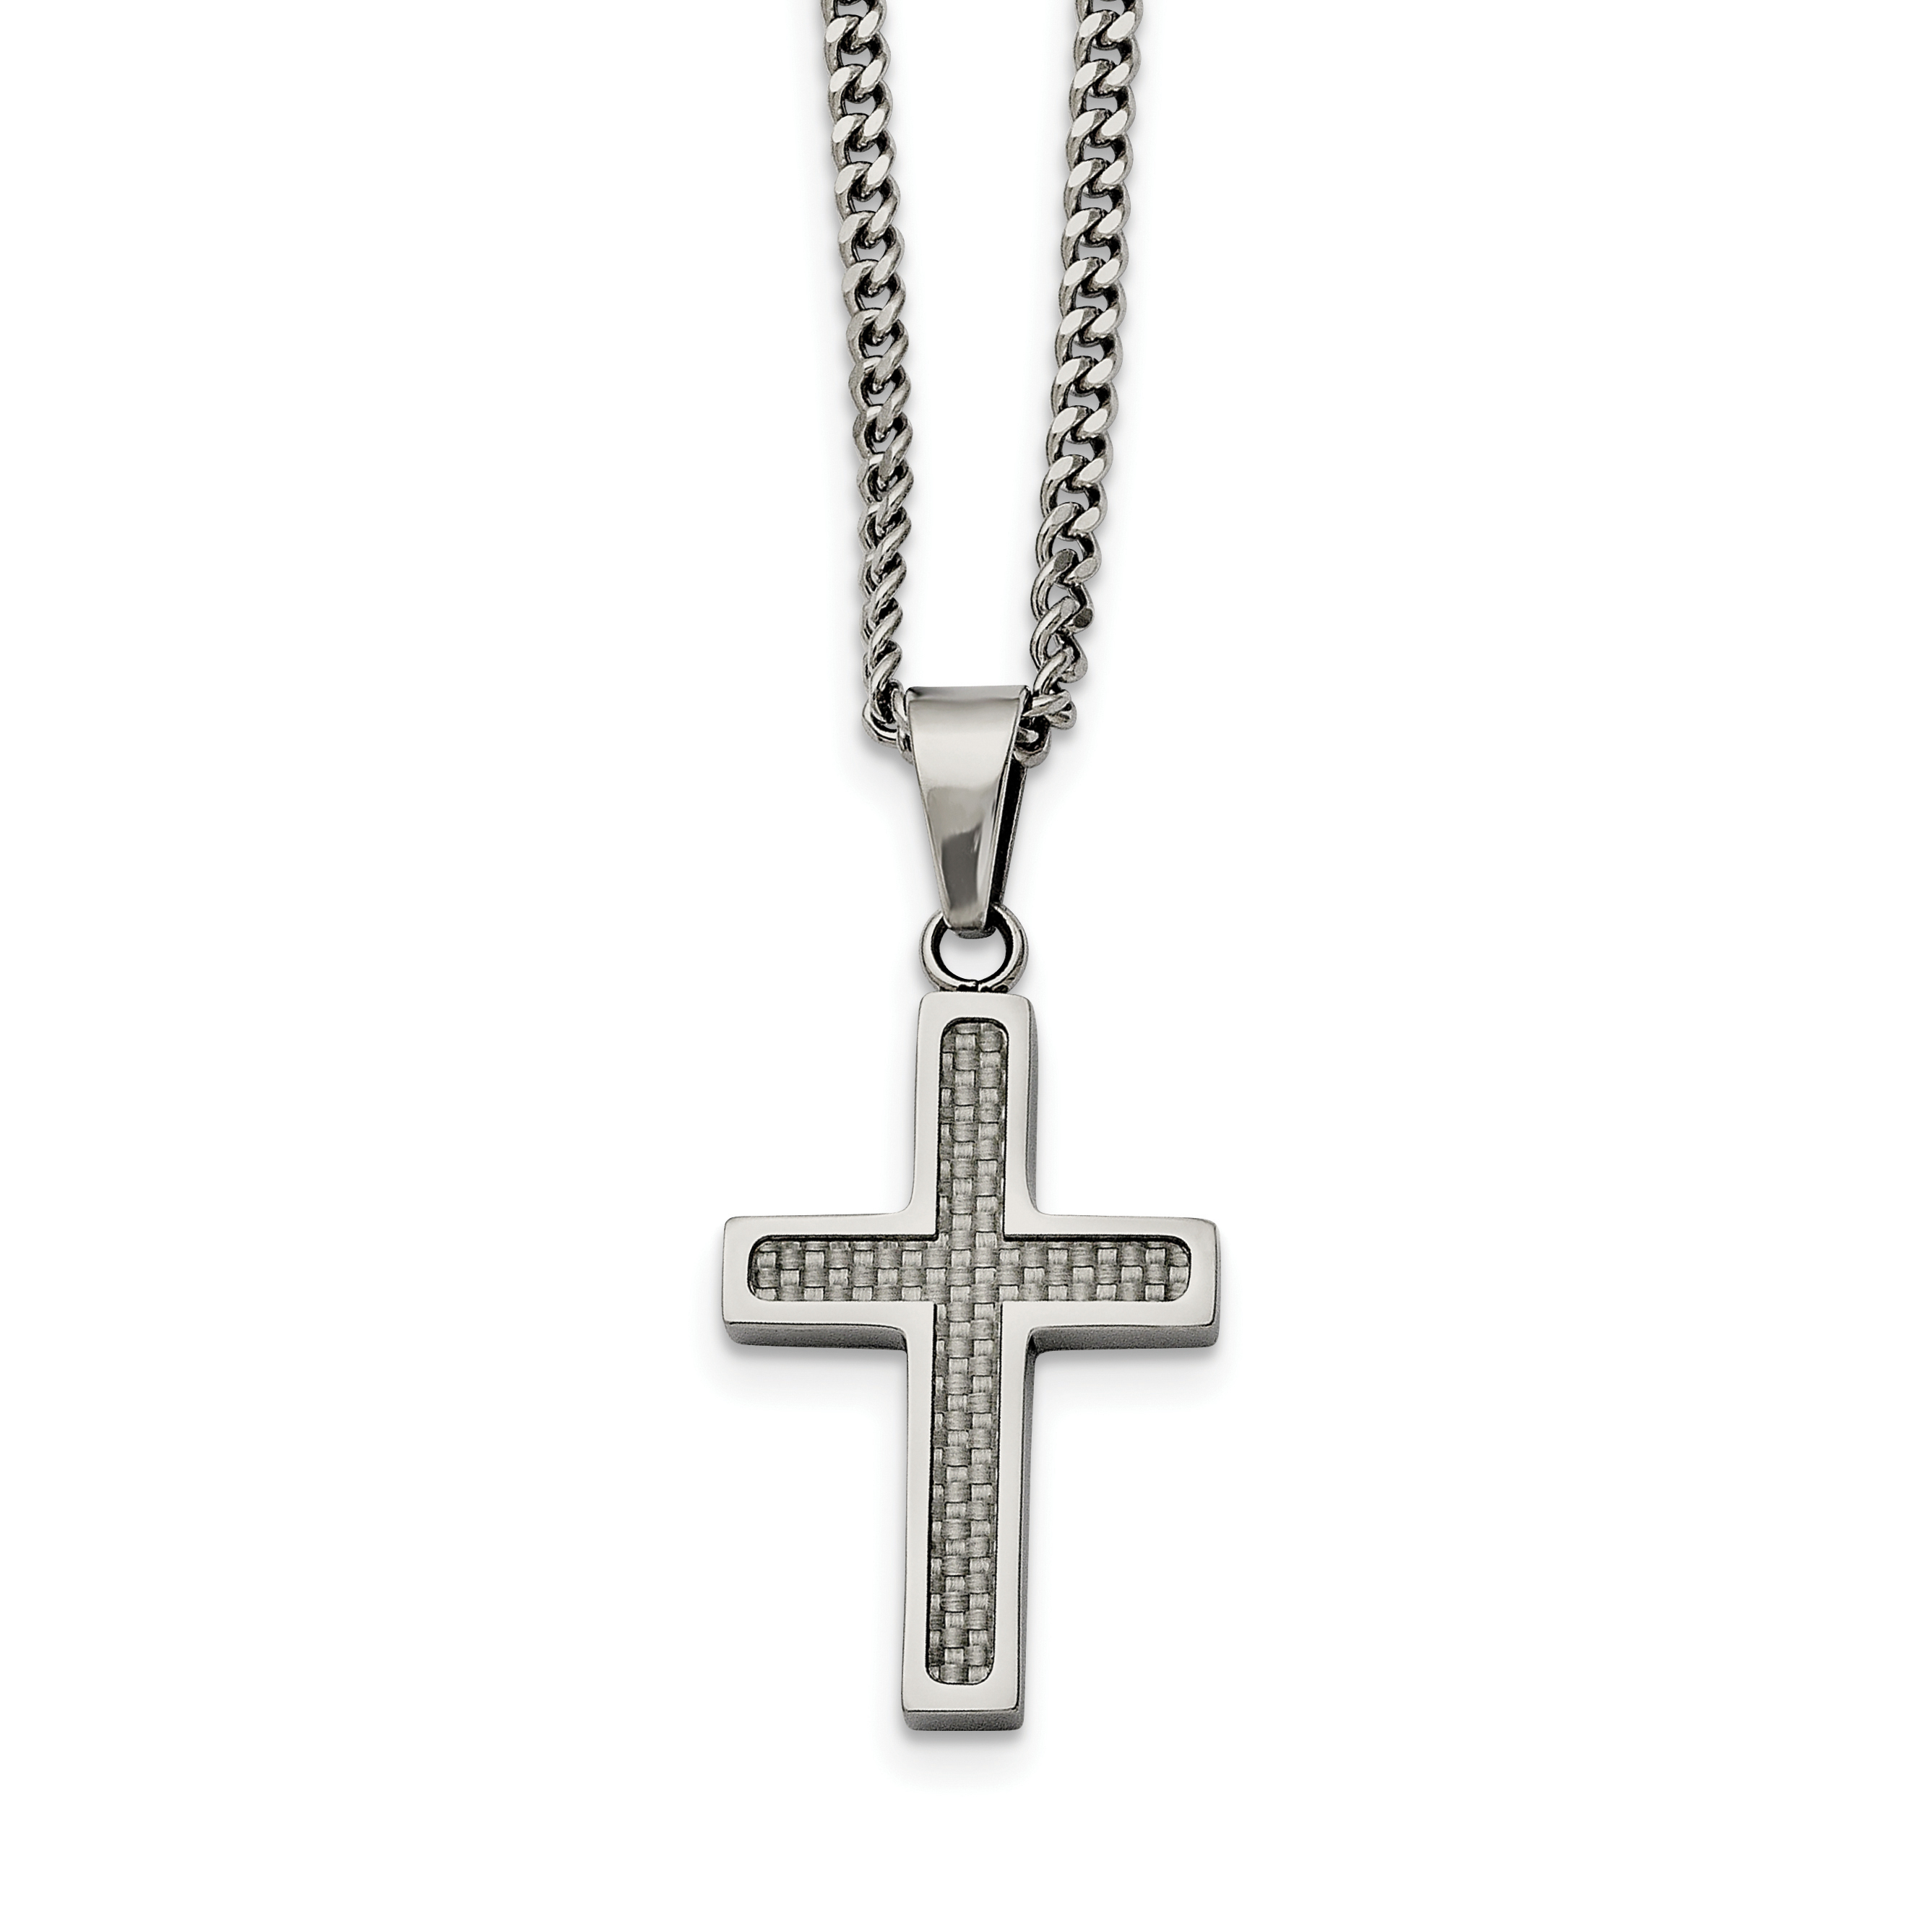 Stainless Steel Polished with Grey Carbon Fiber Inlay Small Cross Necklace 20in - image 3 de 3